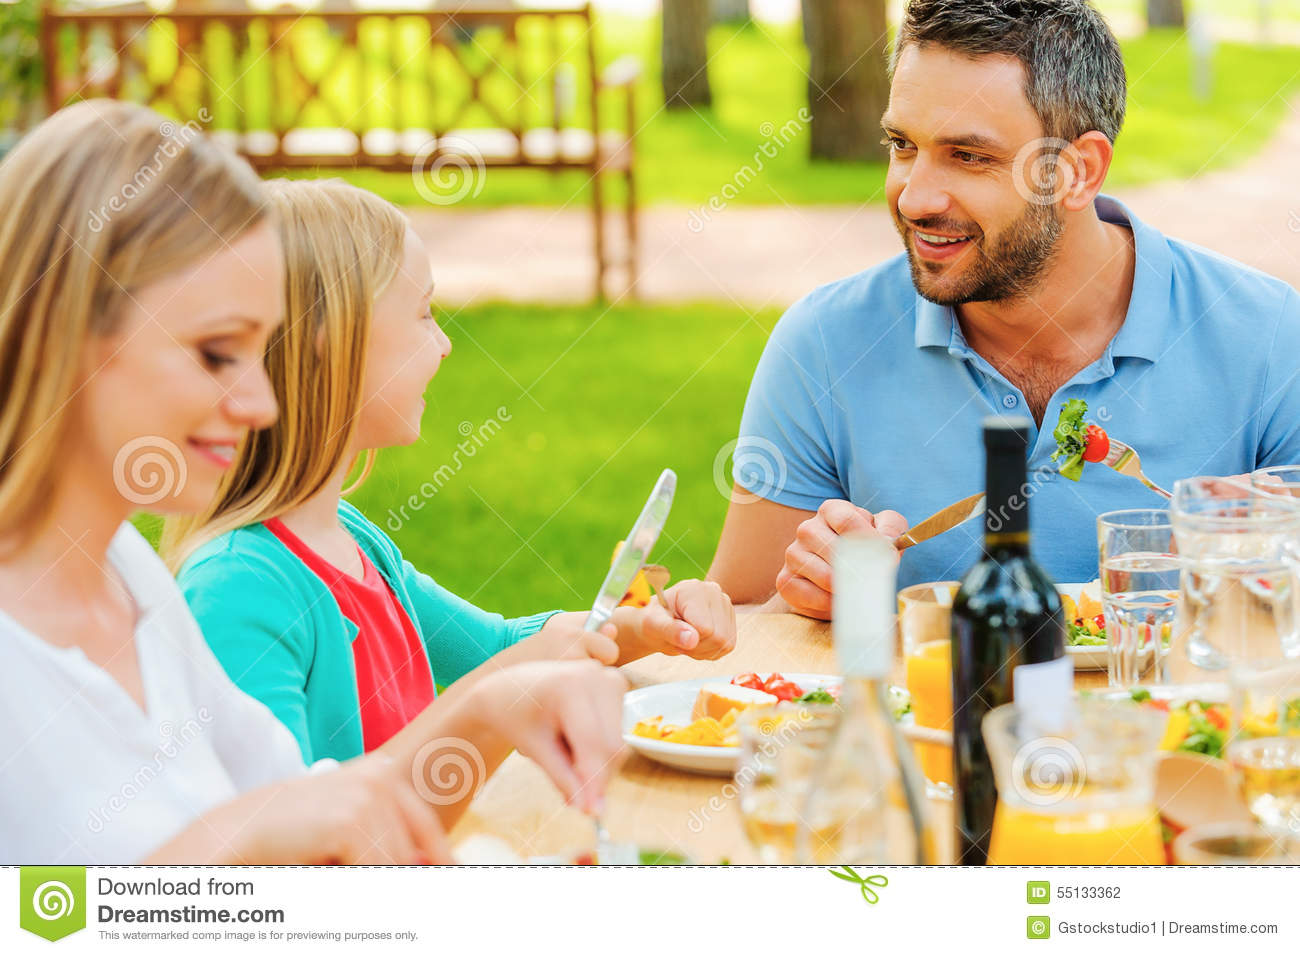 Enjoying dinner together stock photo image 55133362 for Meal outdoors